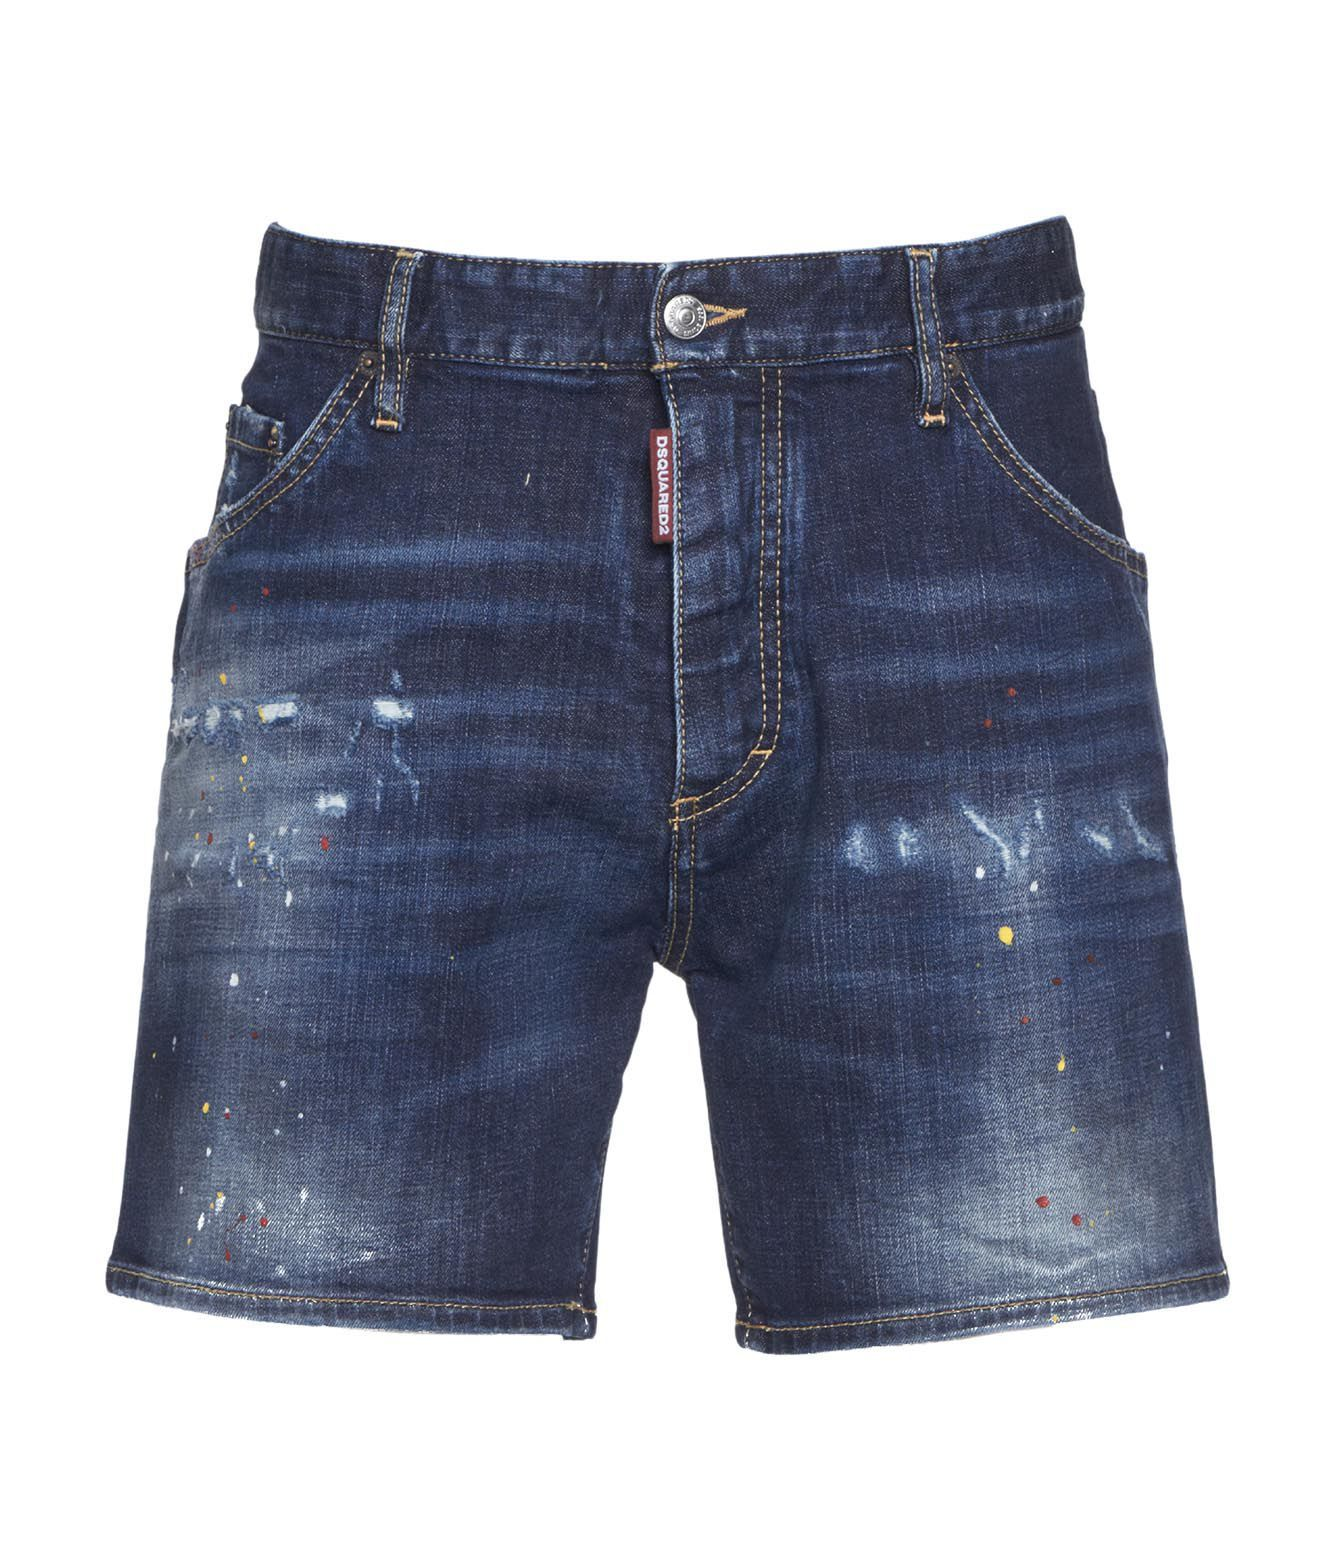 Dsquared2 Shorts DSQUARED2 MEN'S S74MU0649S3066411470 BLUE OTHER MATERIALS SHORTS